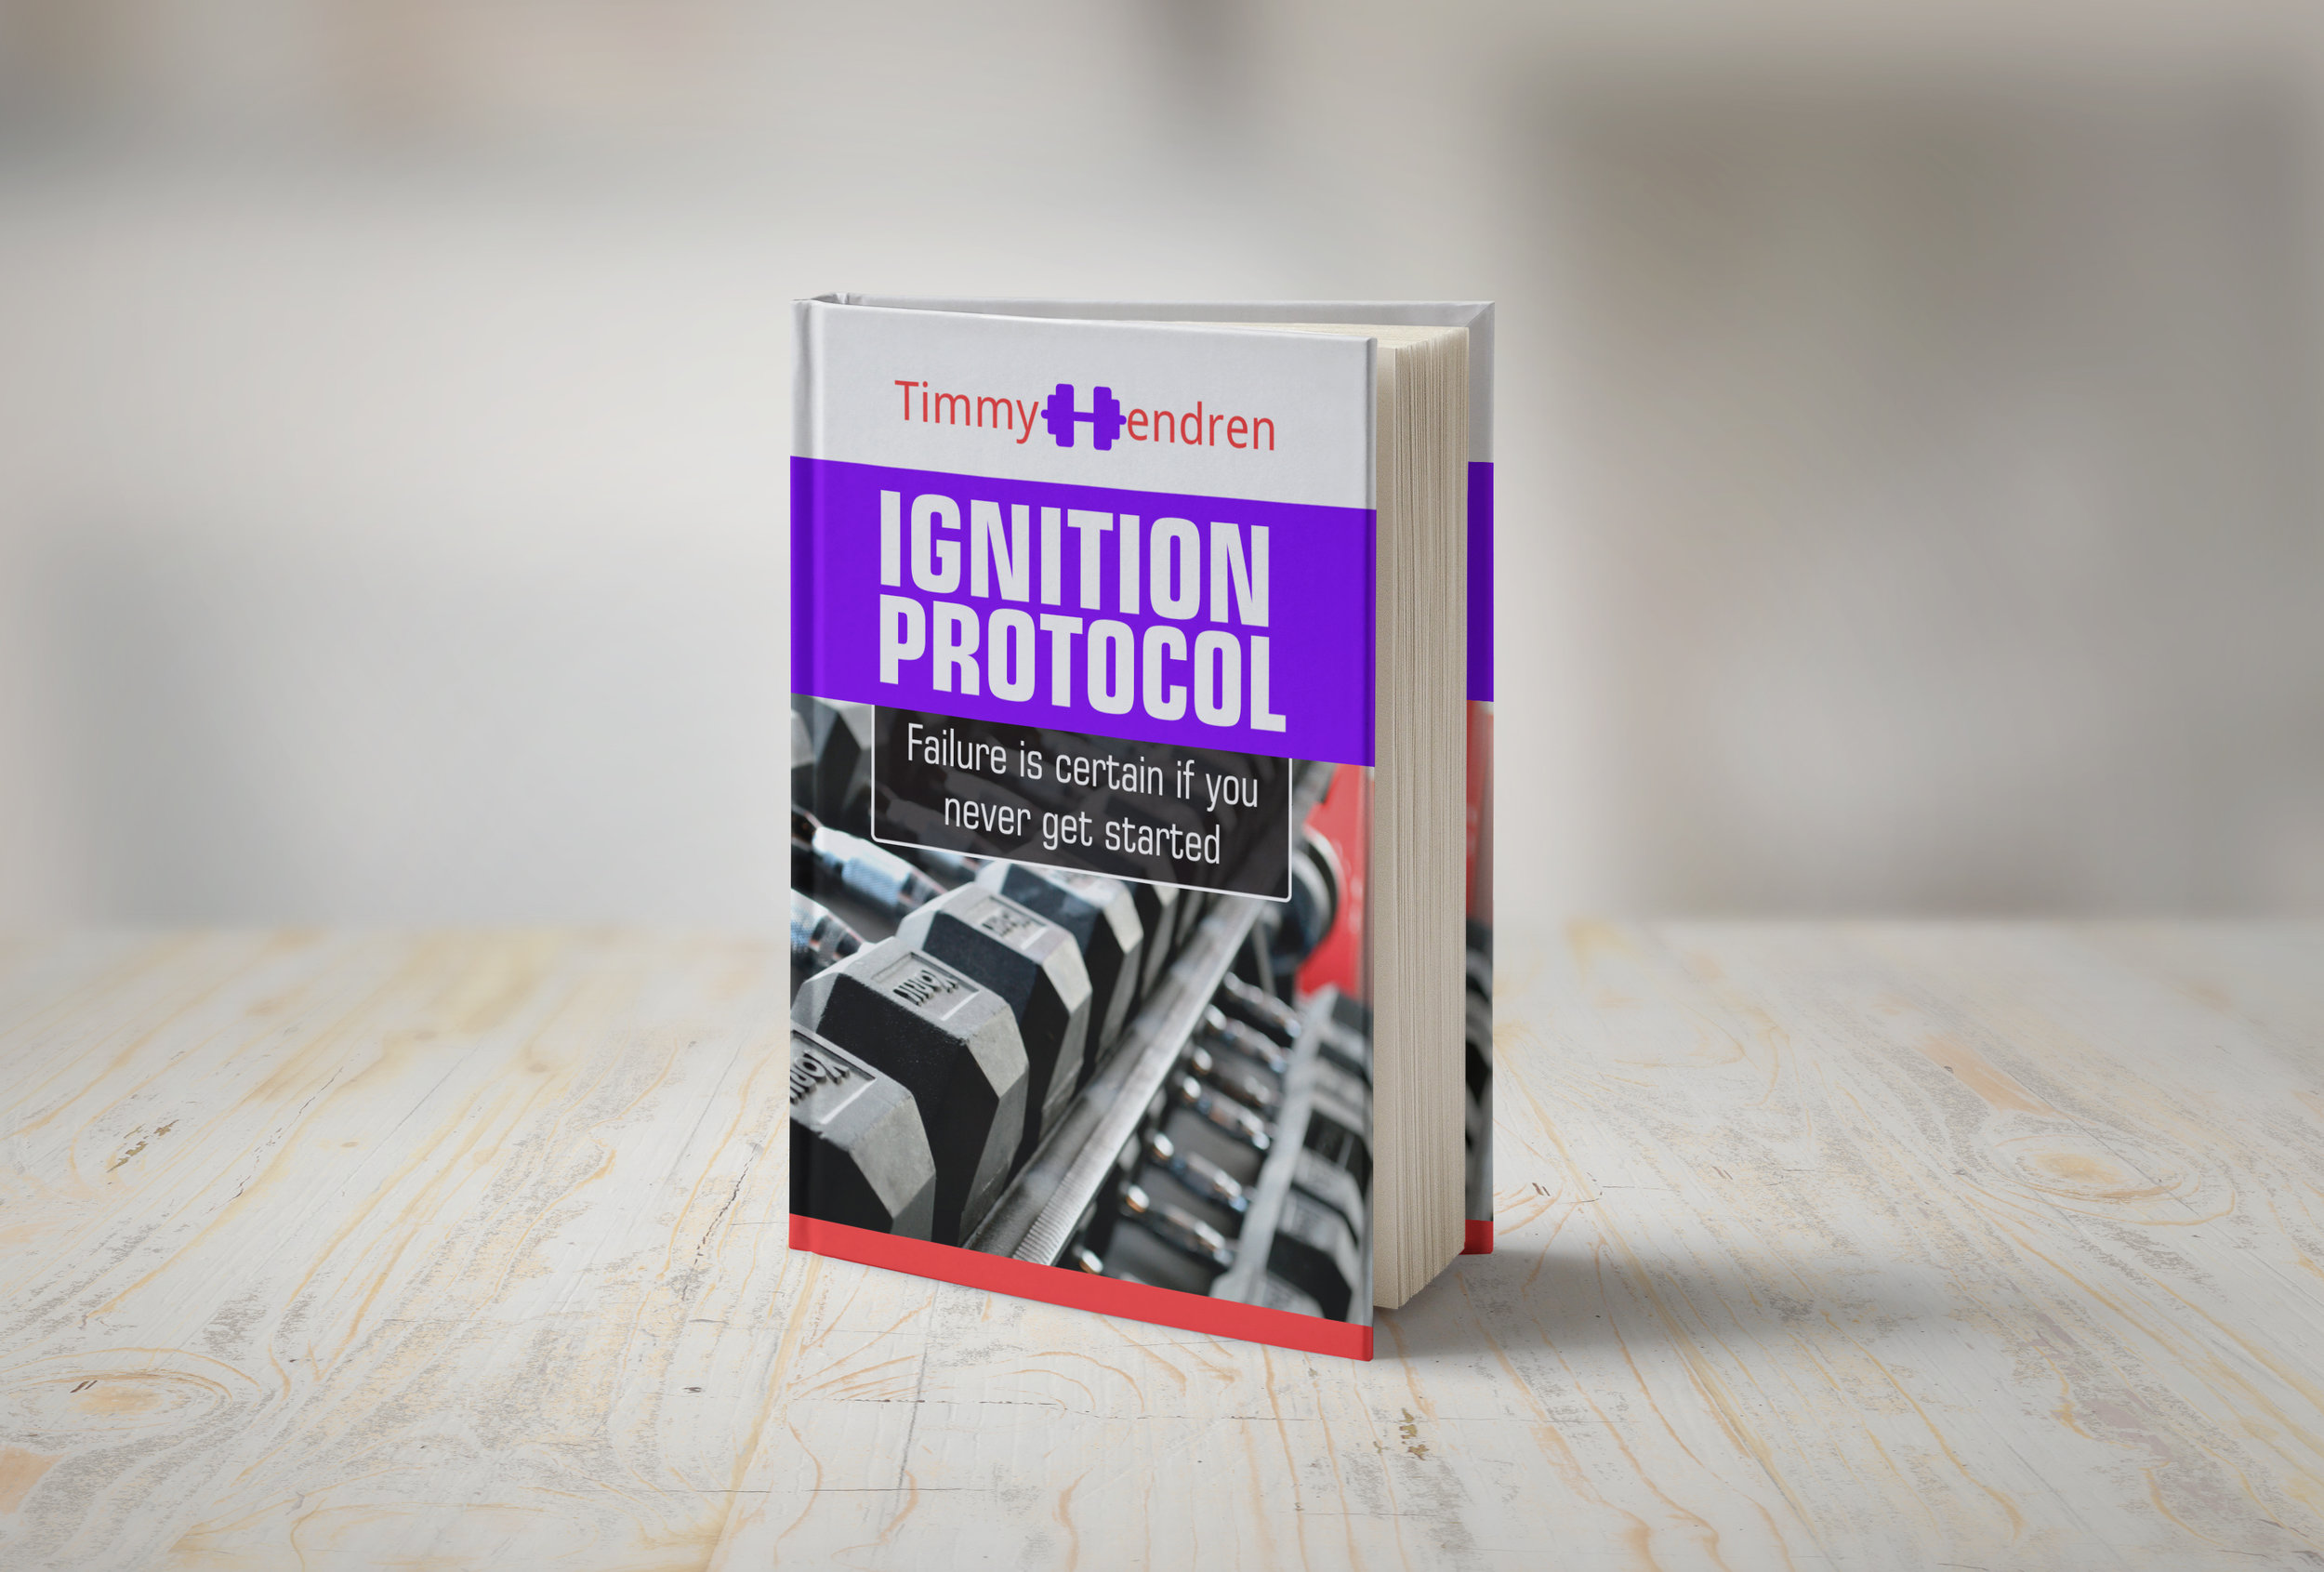 Ignition Protocol: Available now on Amazon, click the pic for details!